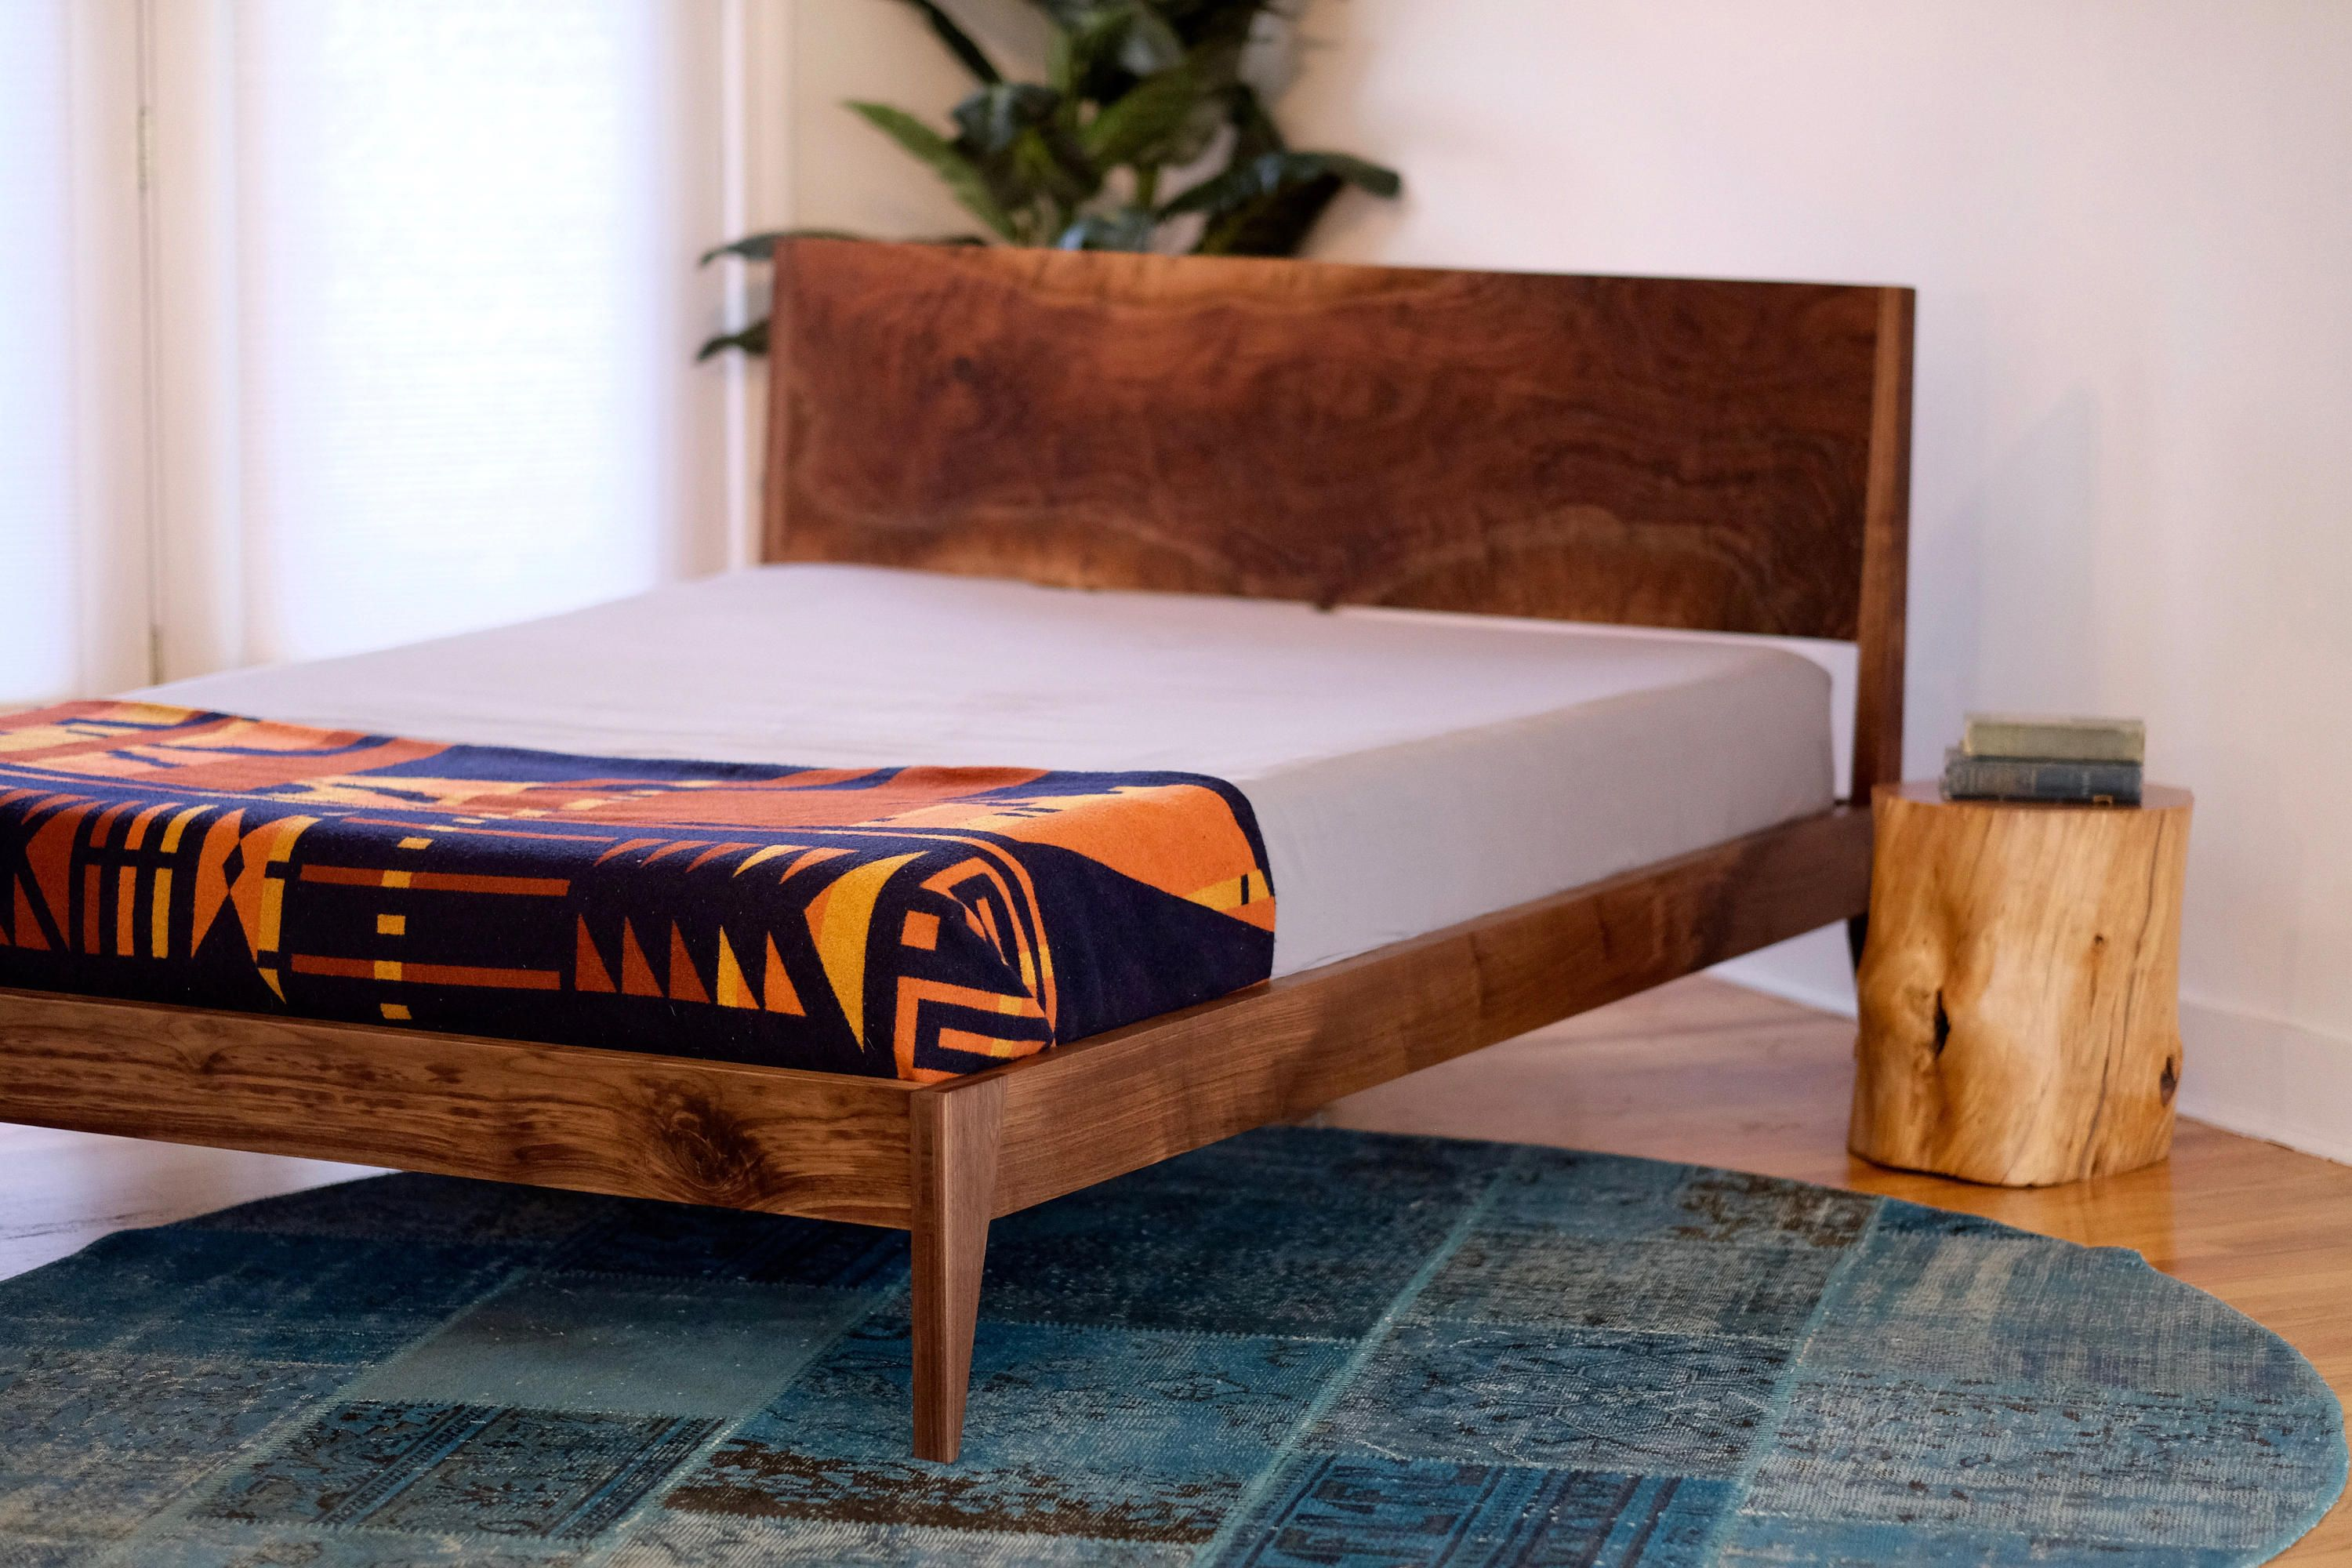 Modern Bed Walnut Bed Solid Wood Bed Platform Bed Mid Etsy Mid